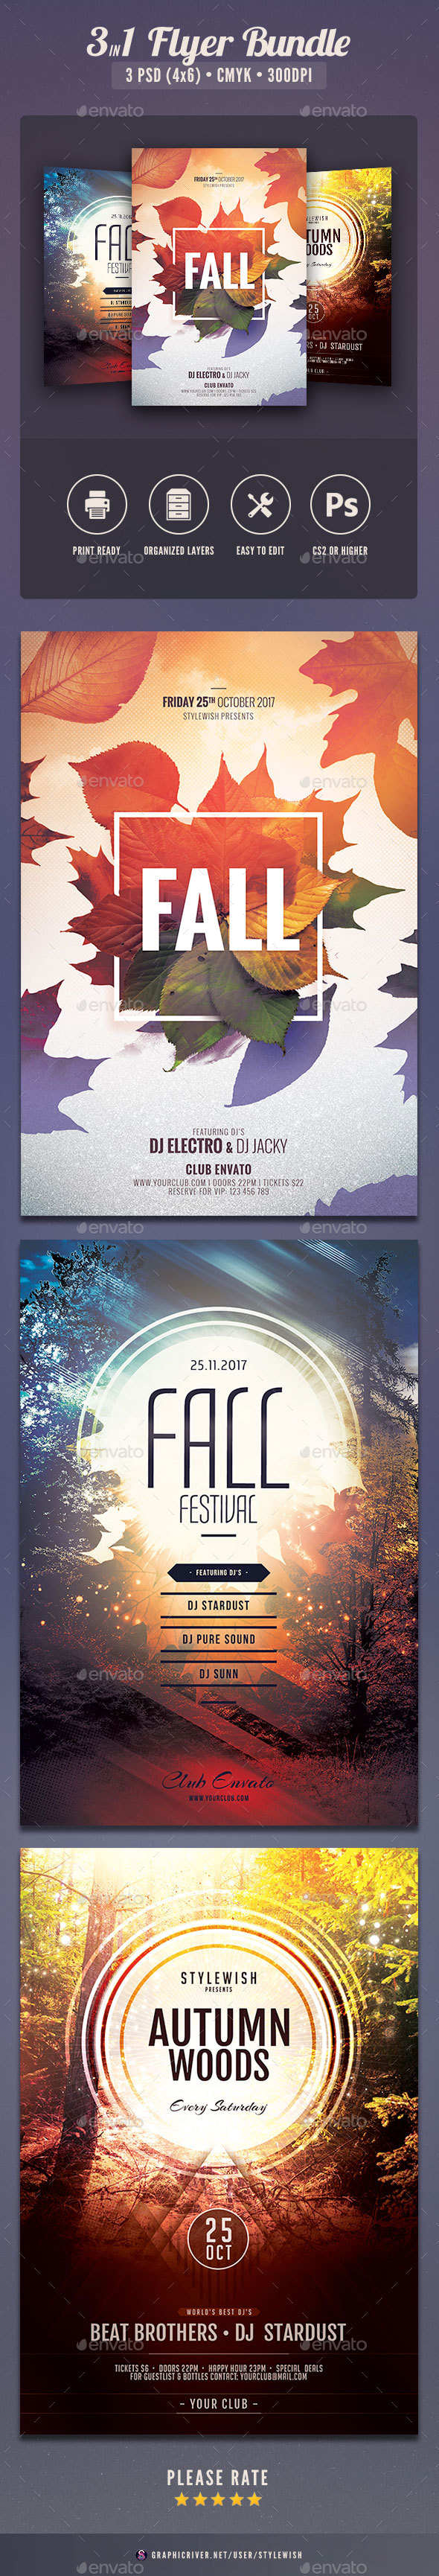 Fall Flyer Bundle Vol.02 - Clubs & Parties Events